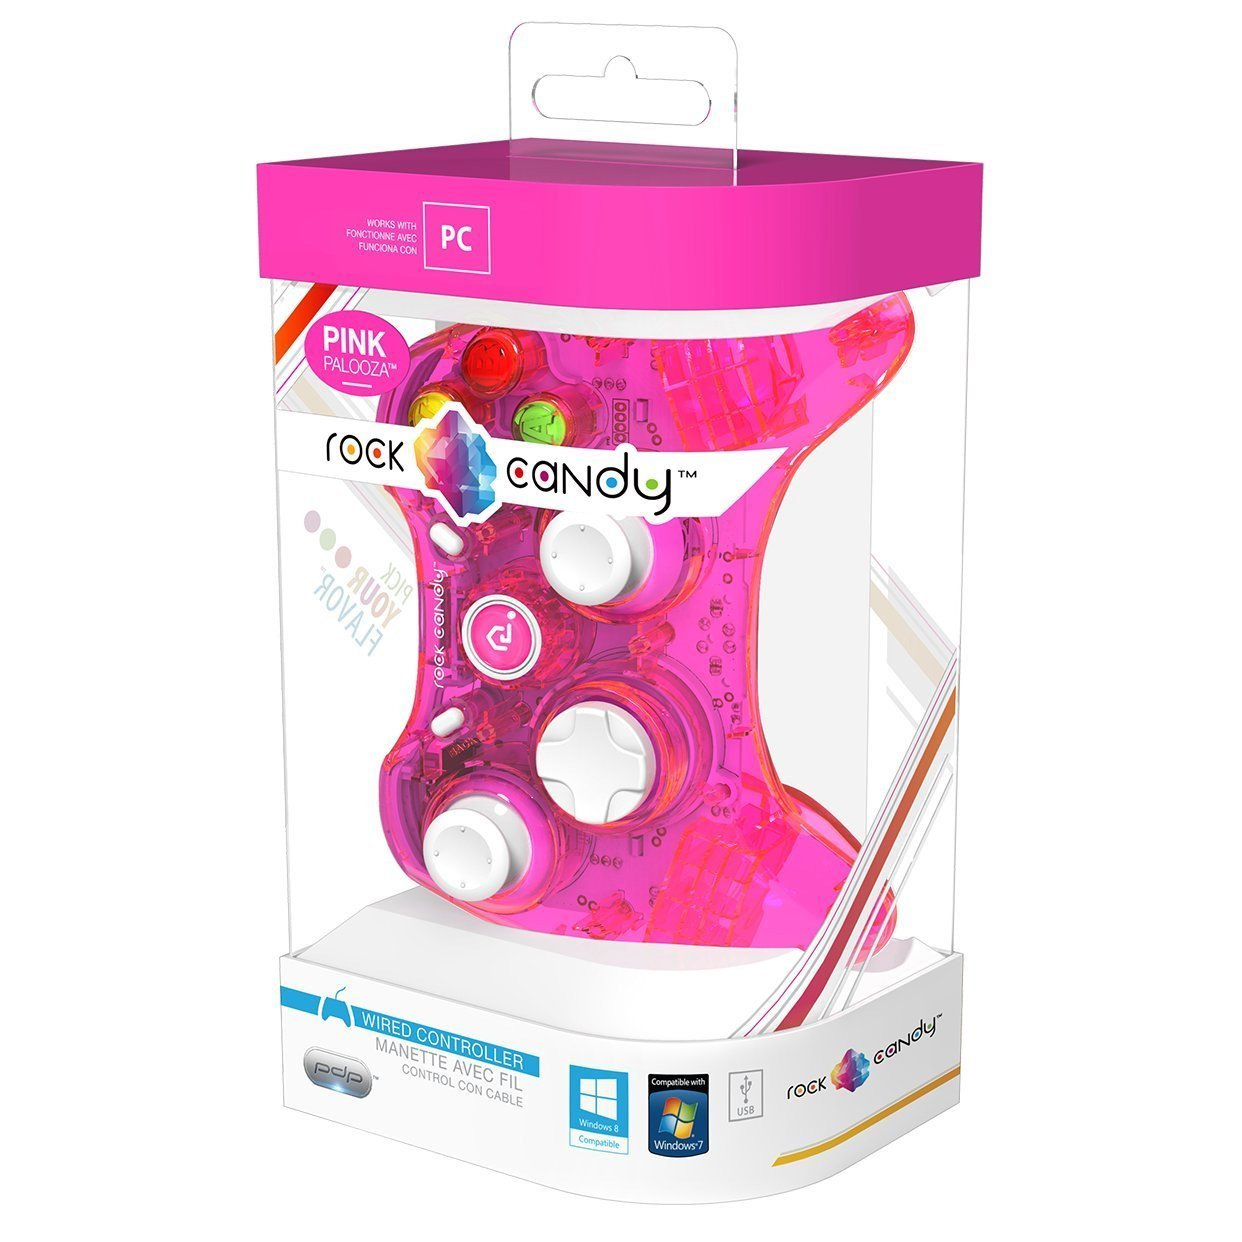 PDP Rock Candy Wired Controller for PC, Pink Palooza (904-004-NA-PK) Performance Designed Products